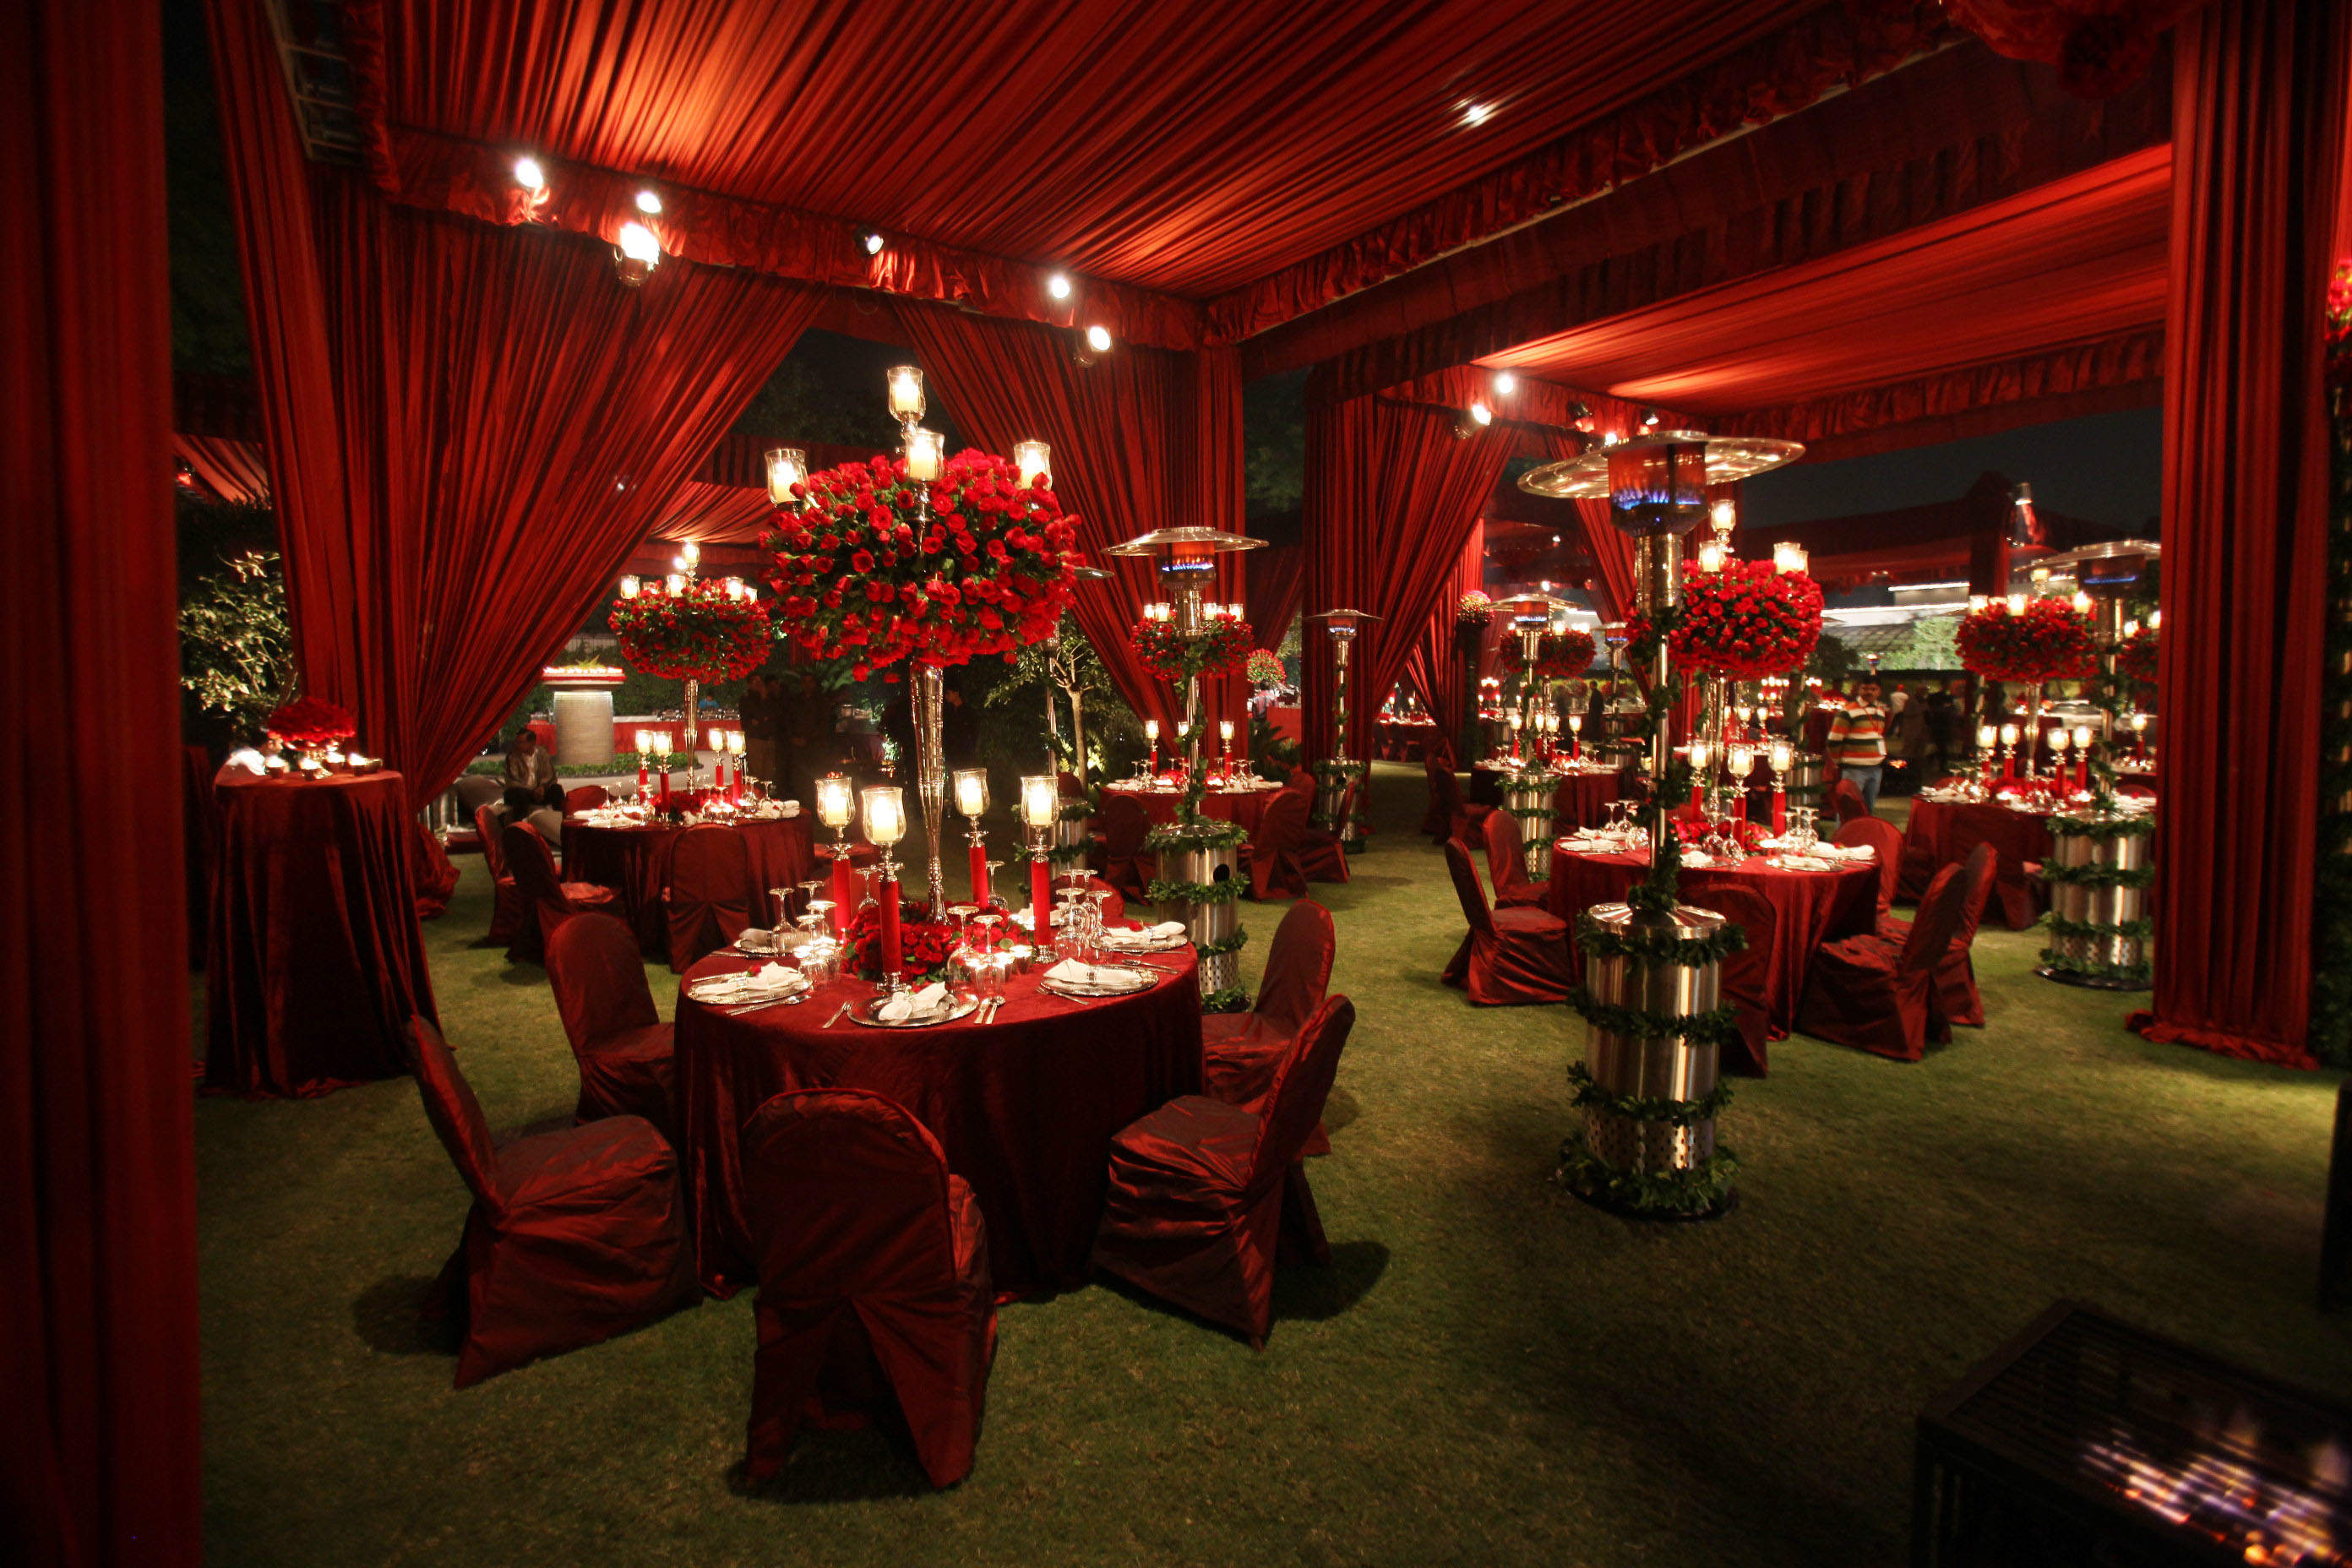 Tasty Bite Caterers & Tilak Tent and Decorators - Sector 8 - Chandigarh Image